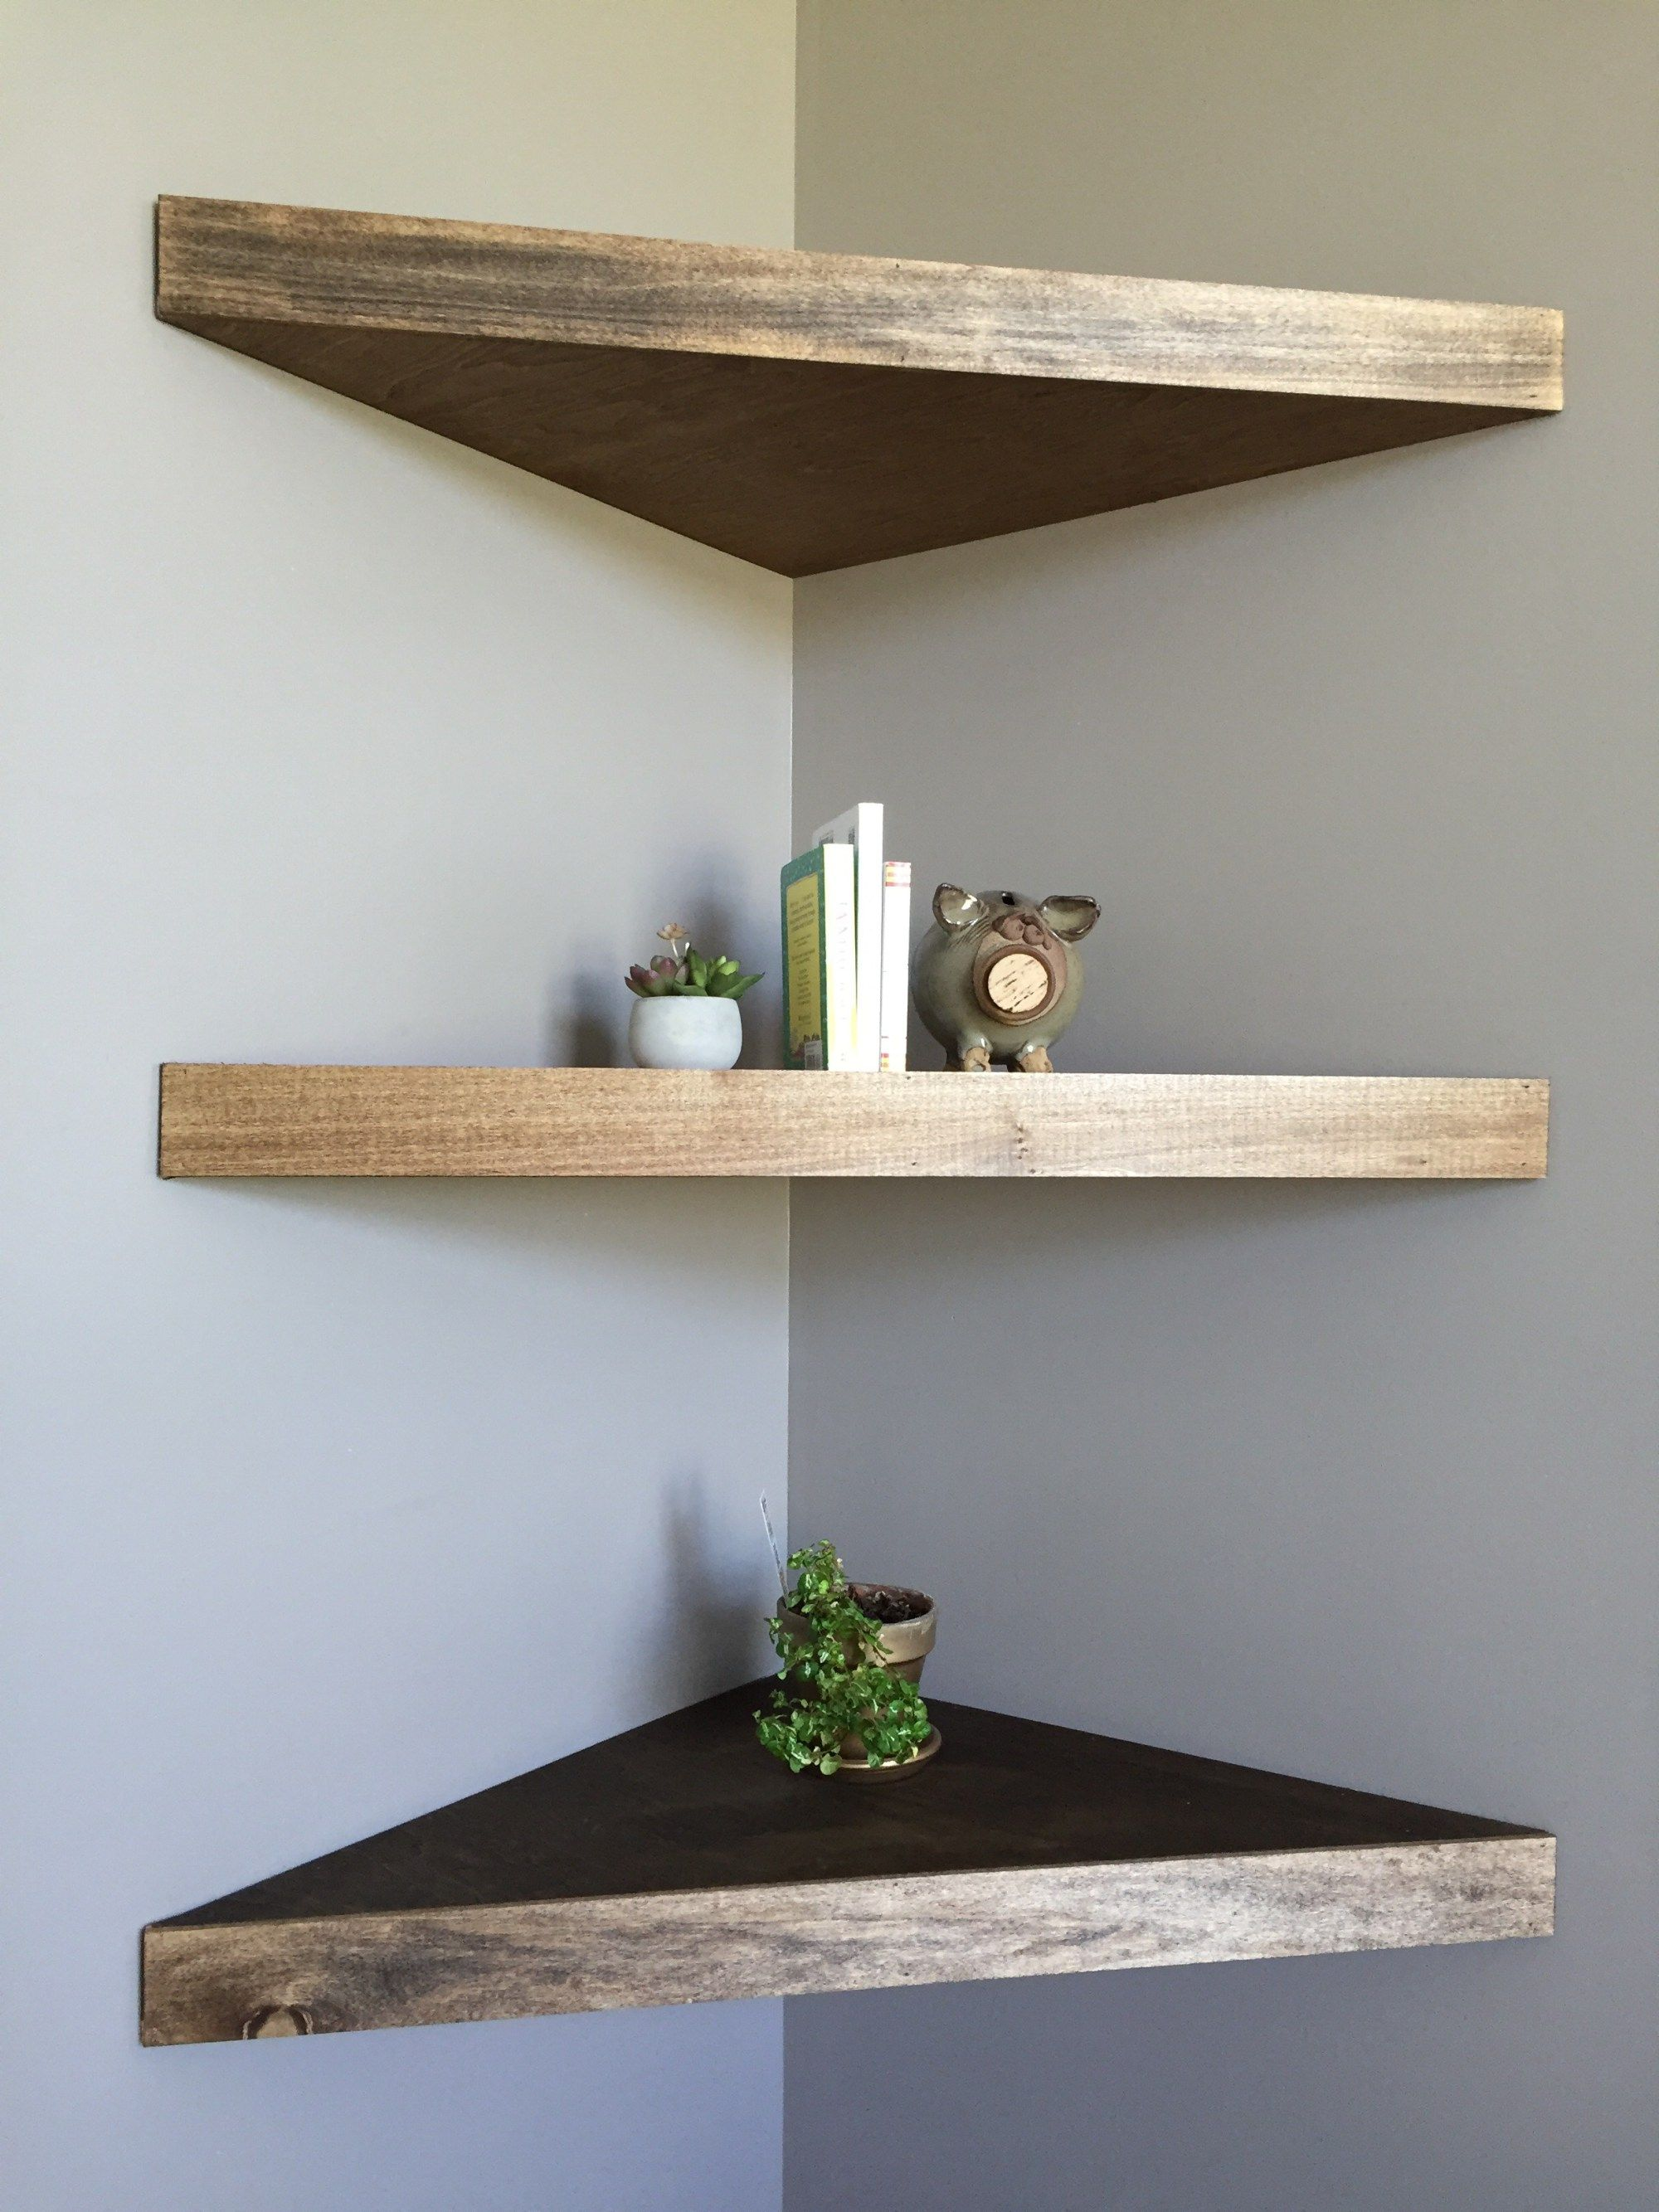 diy floating corner shelves for the home heavy duty shelf target ture rustic wall mounted jacket hooks small wooden computer desks spaces hang stuff without nails mount